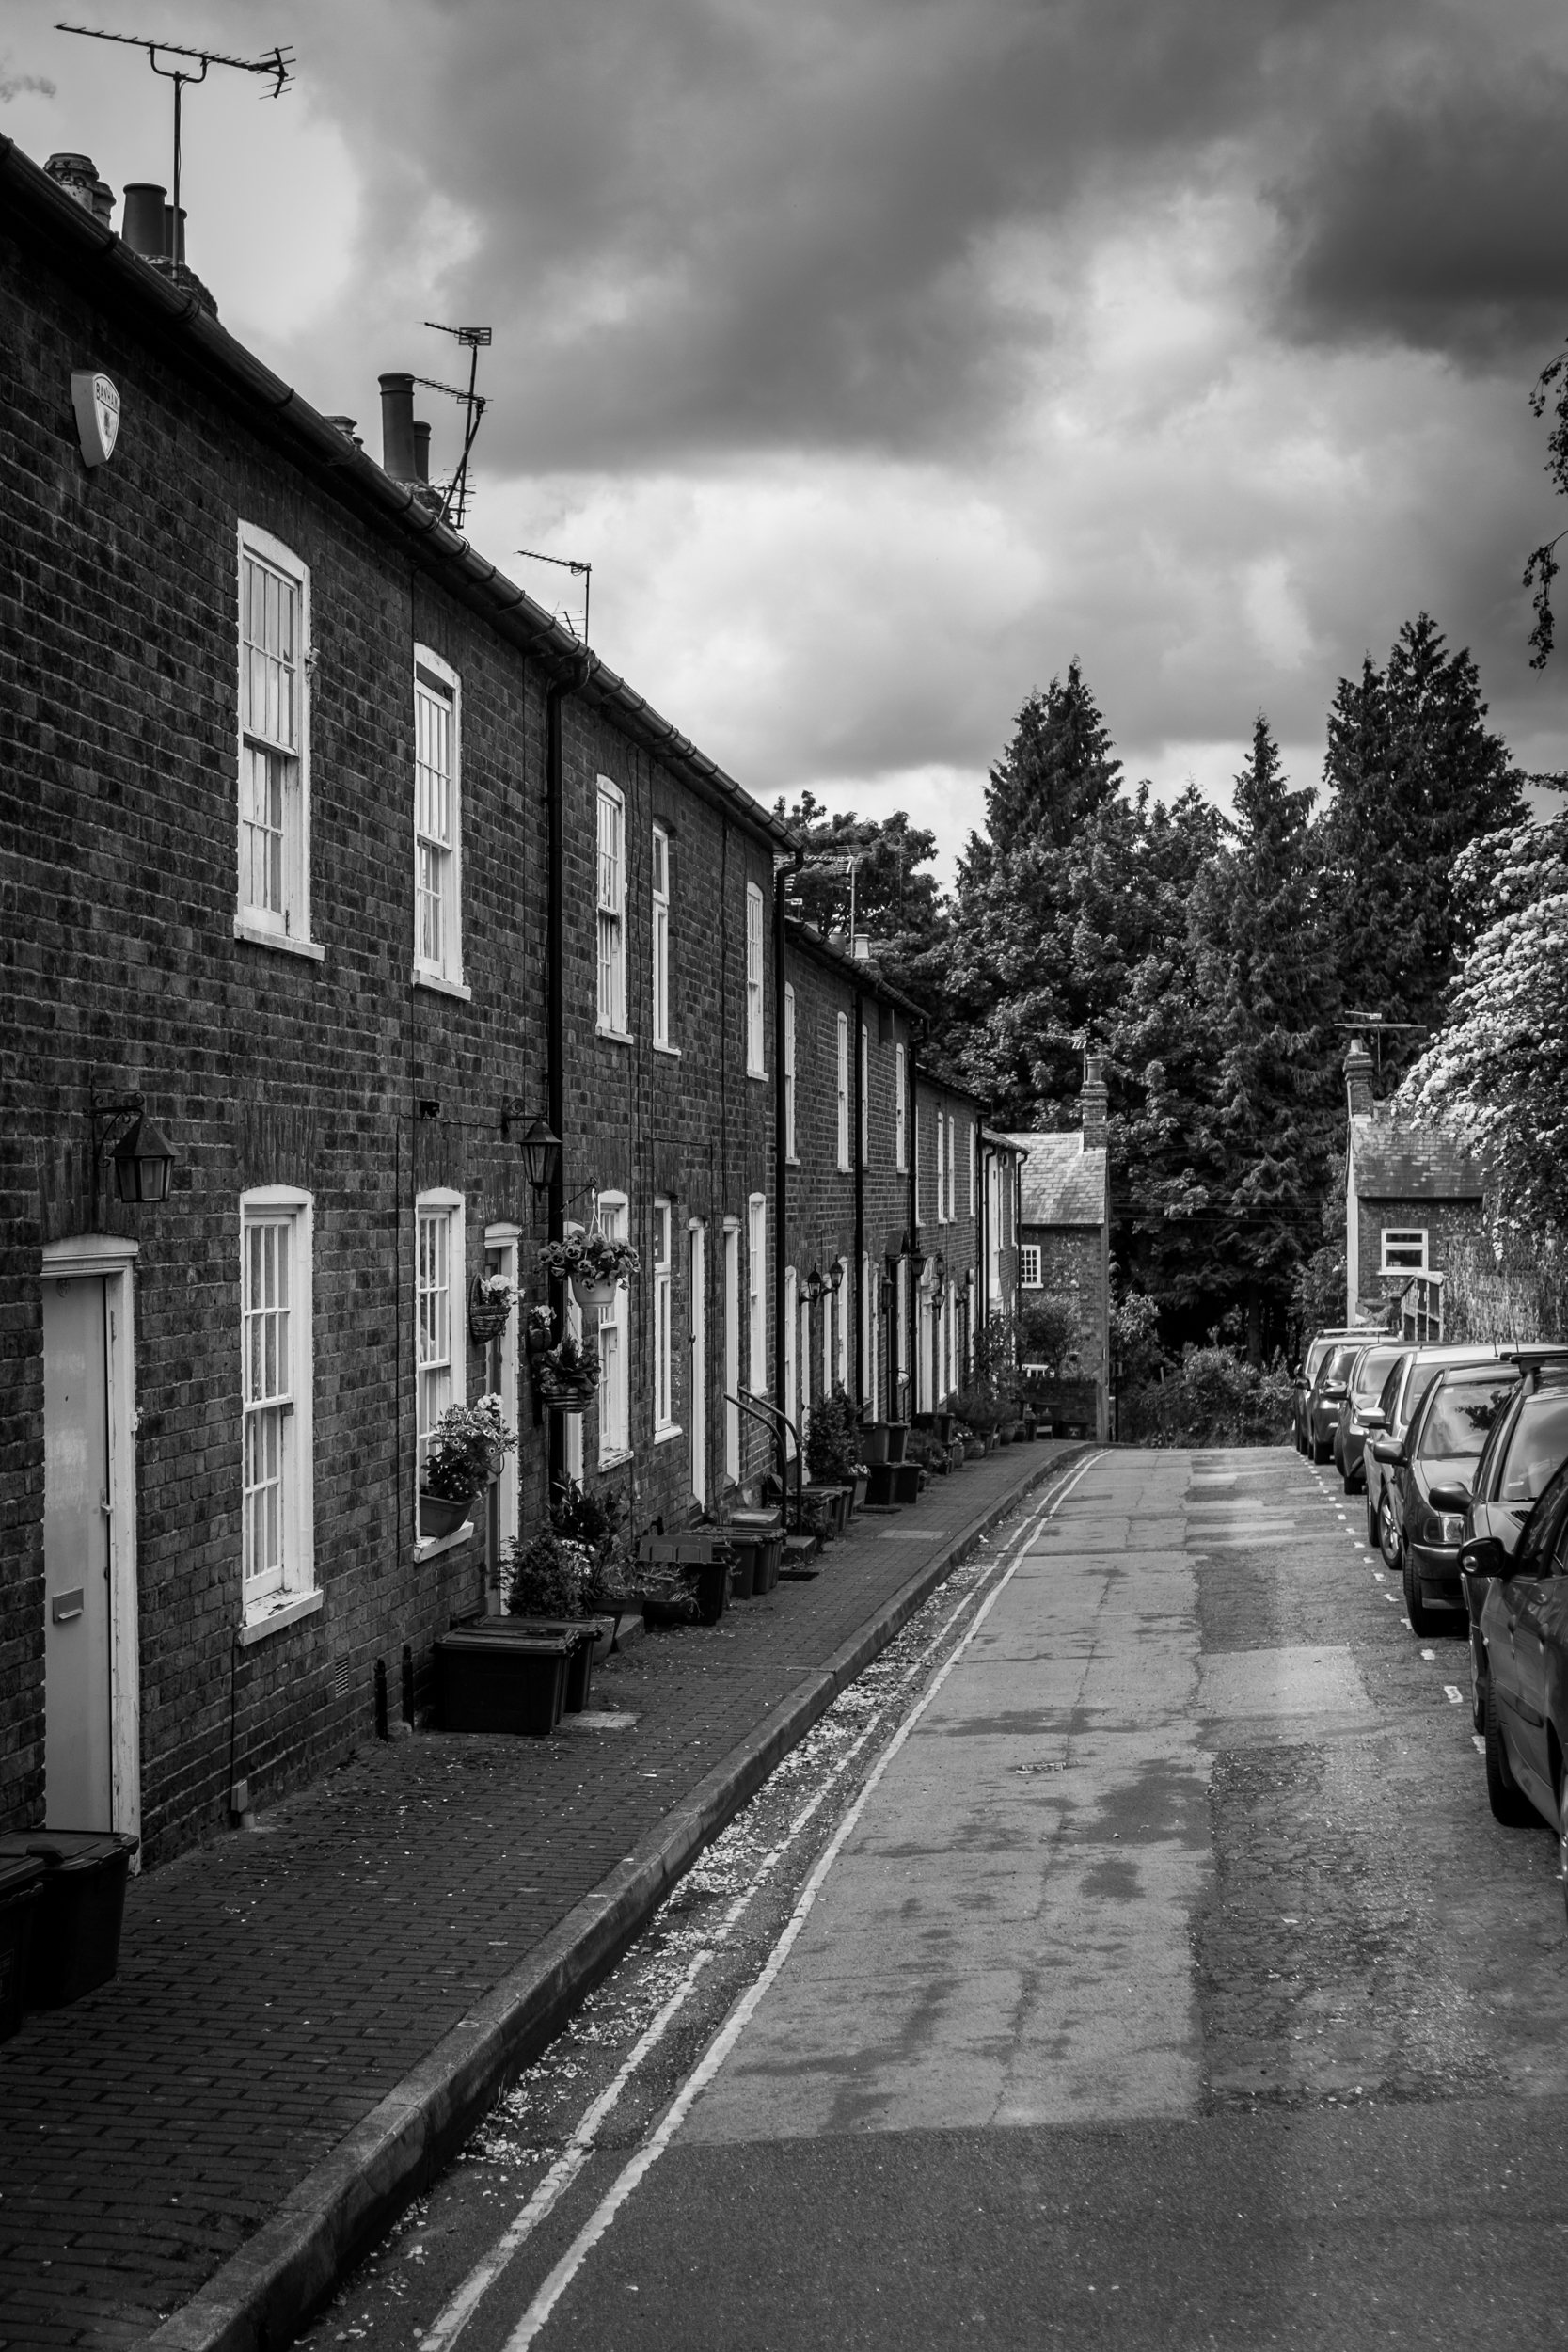 An old street in St. Albans. Shot with Fujifilm X-E1 with Olympus 35mm f/2.8 at 1/500 sec f/5.6 ISO 200